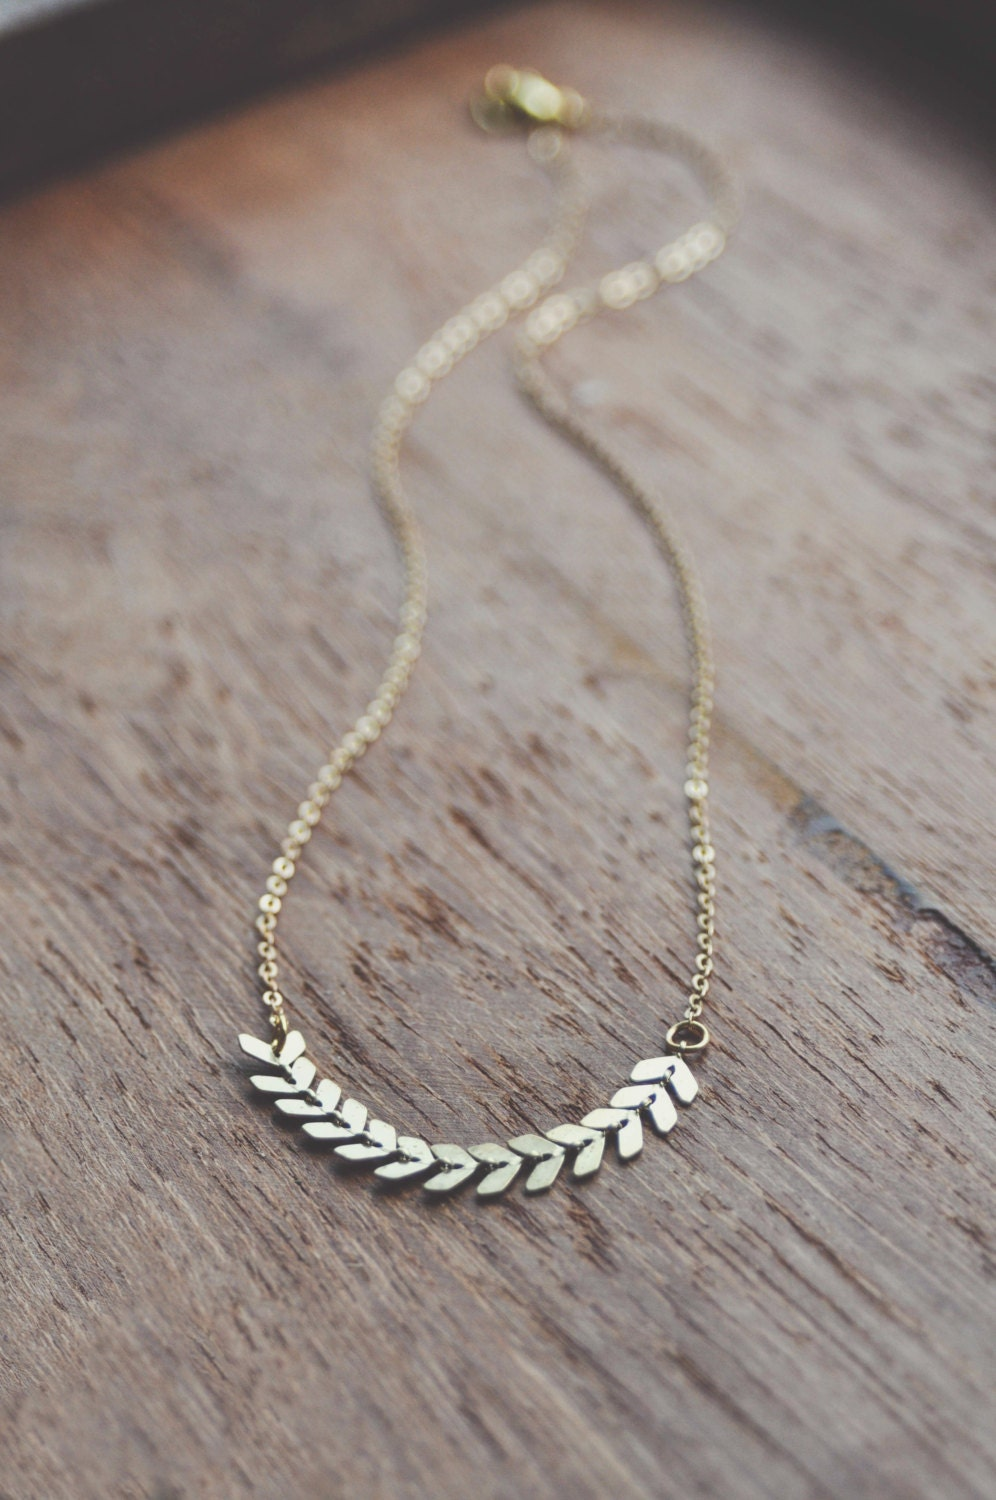 boho dainty chevron necklace by bellehibou on etsy